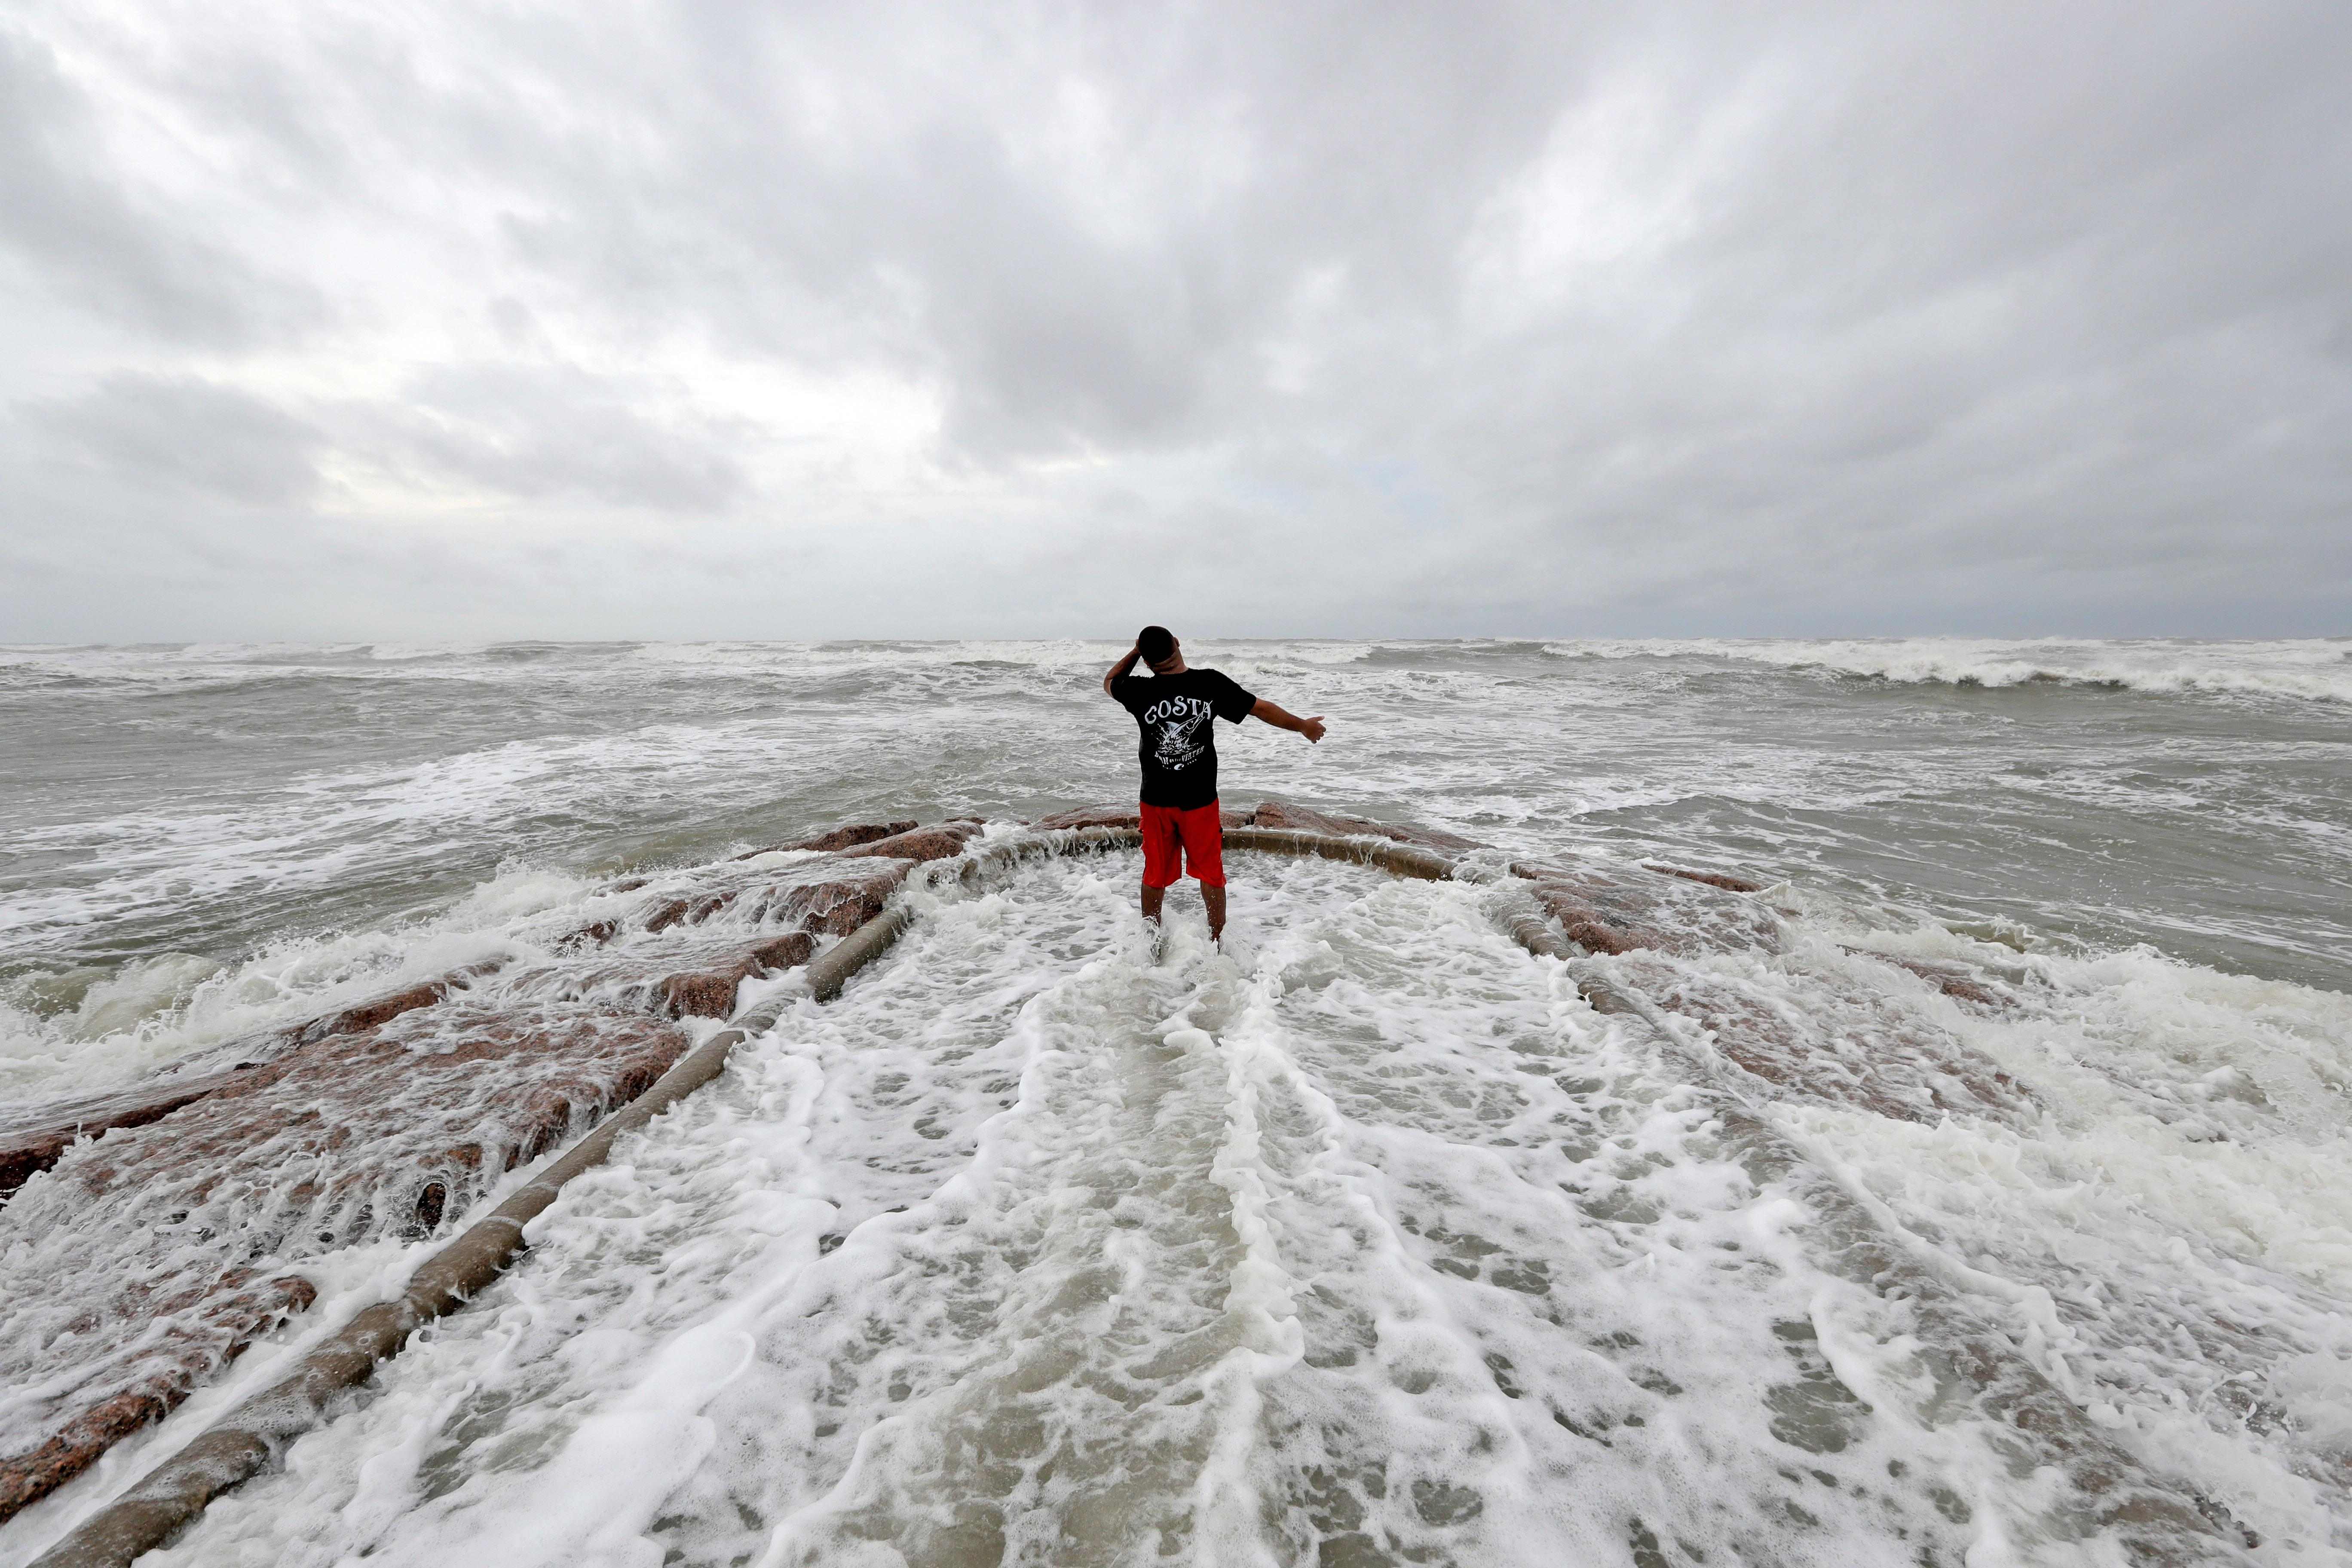 Luis Perez watches waves crash again a jetty in Galveston, Texas as Hurricane Harvey intensifies in the Gulf of Mexico Friday, Aug. 25, 2017. Harvey is forecast to be a major hurricane when it makes landfall along the middle Texas coastline. (AP Photo/David J. Phillip)